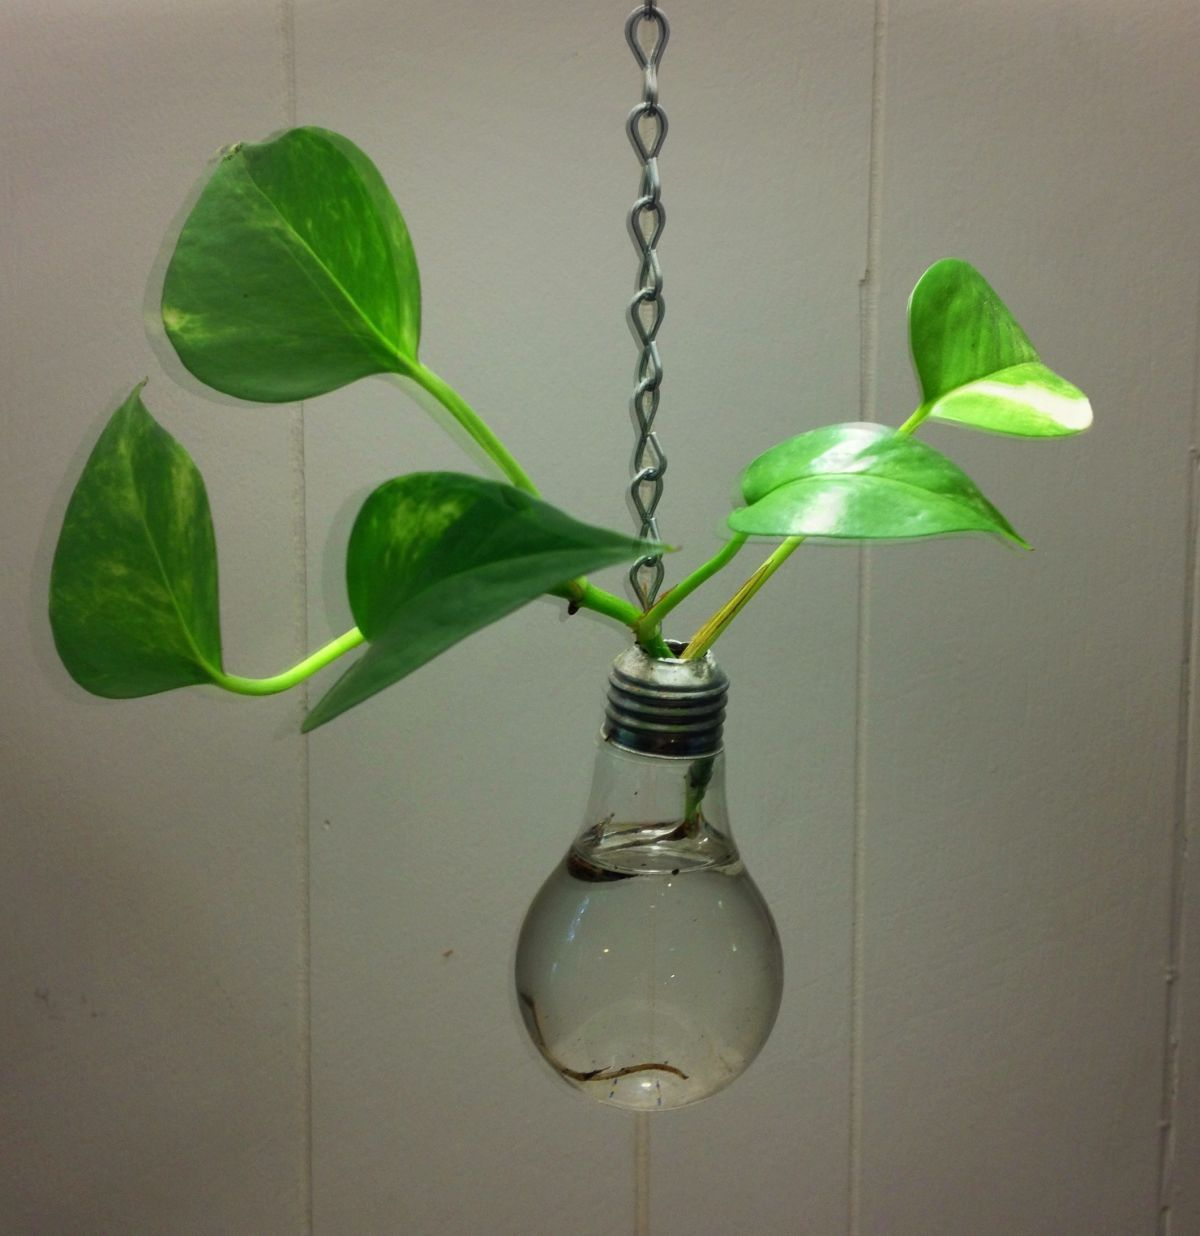 Recycled Light Bulb Hanging Vase